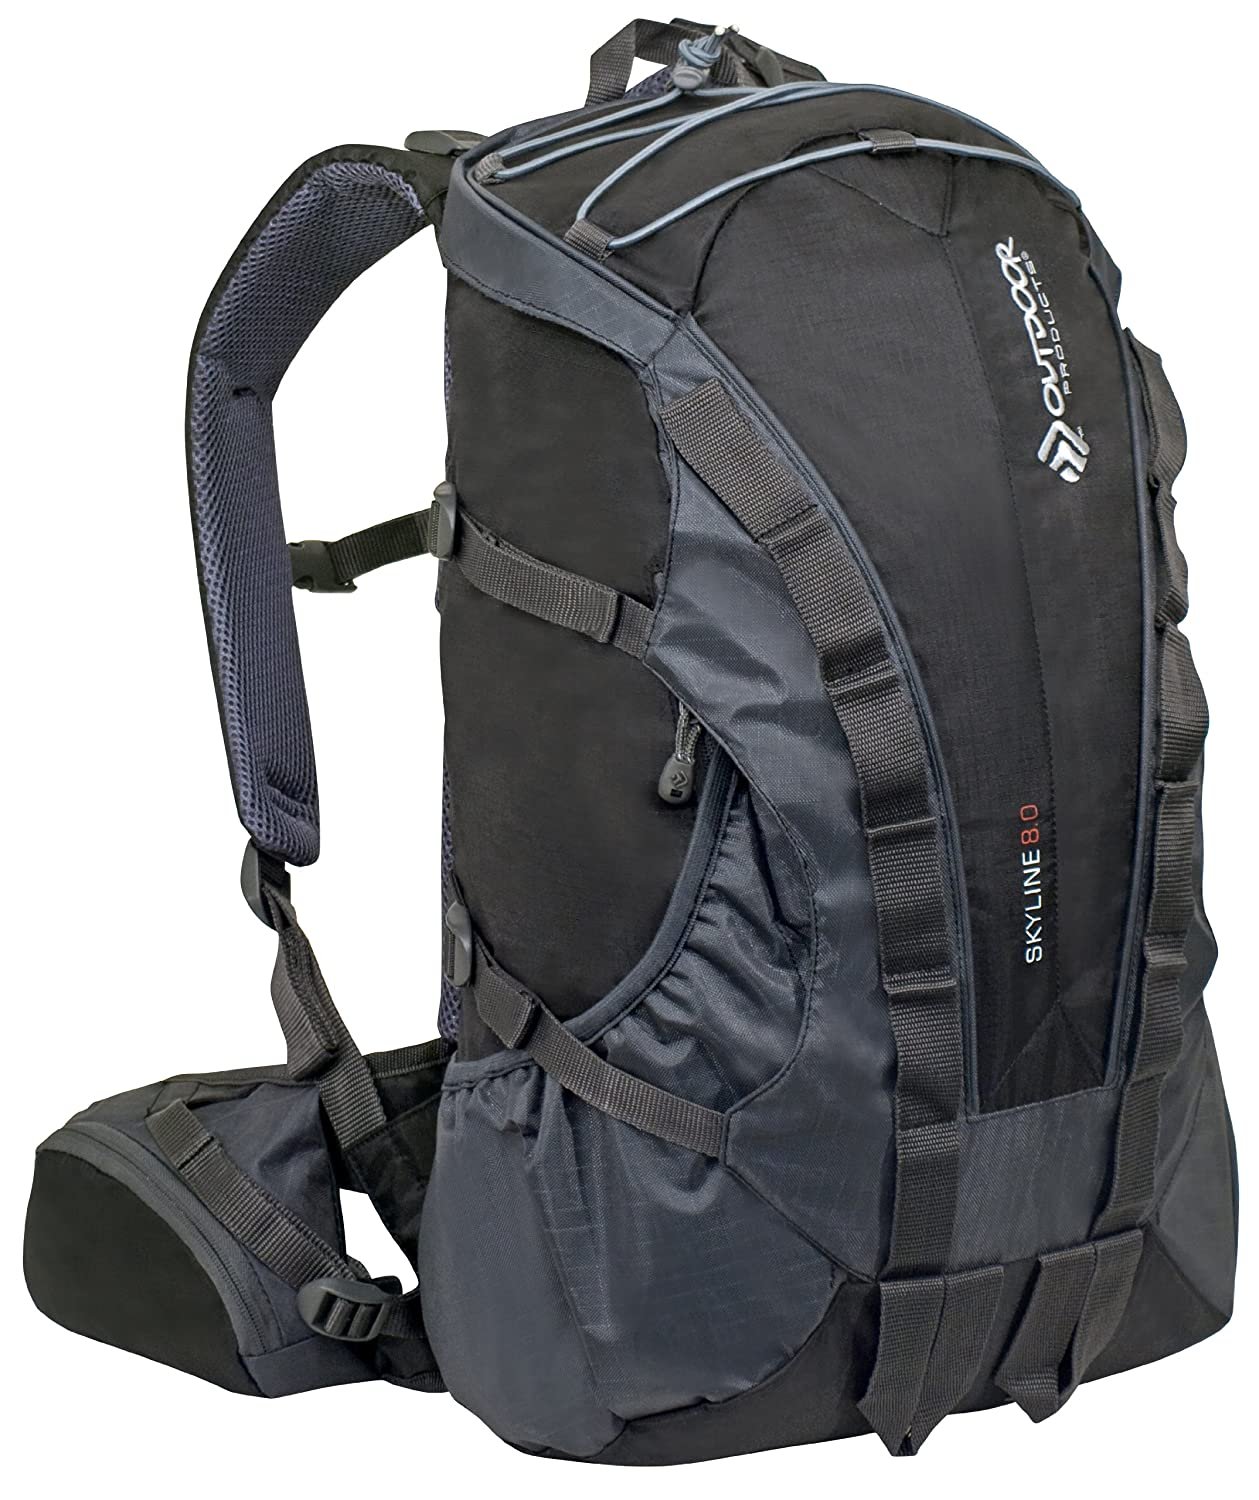 Best Camping Backpack Amazon- Fenix Toulouse Handball c1a5b461fc932